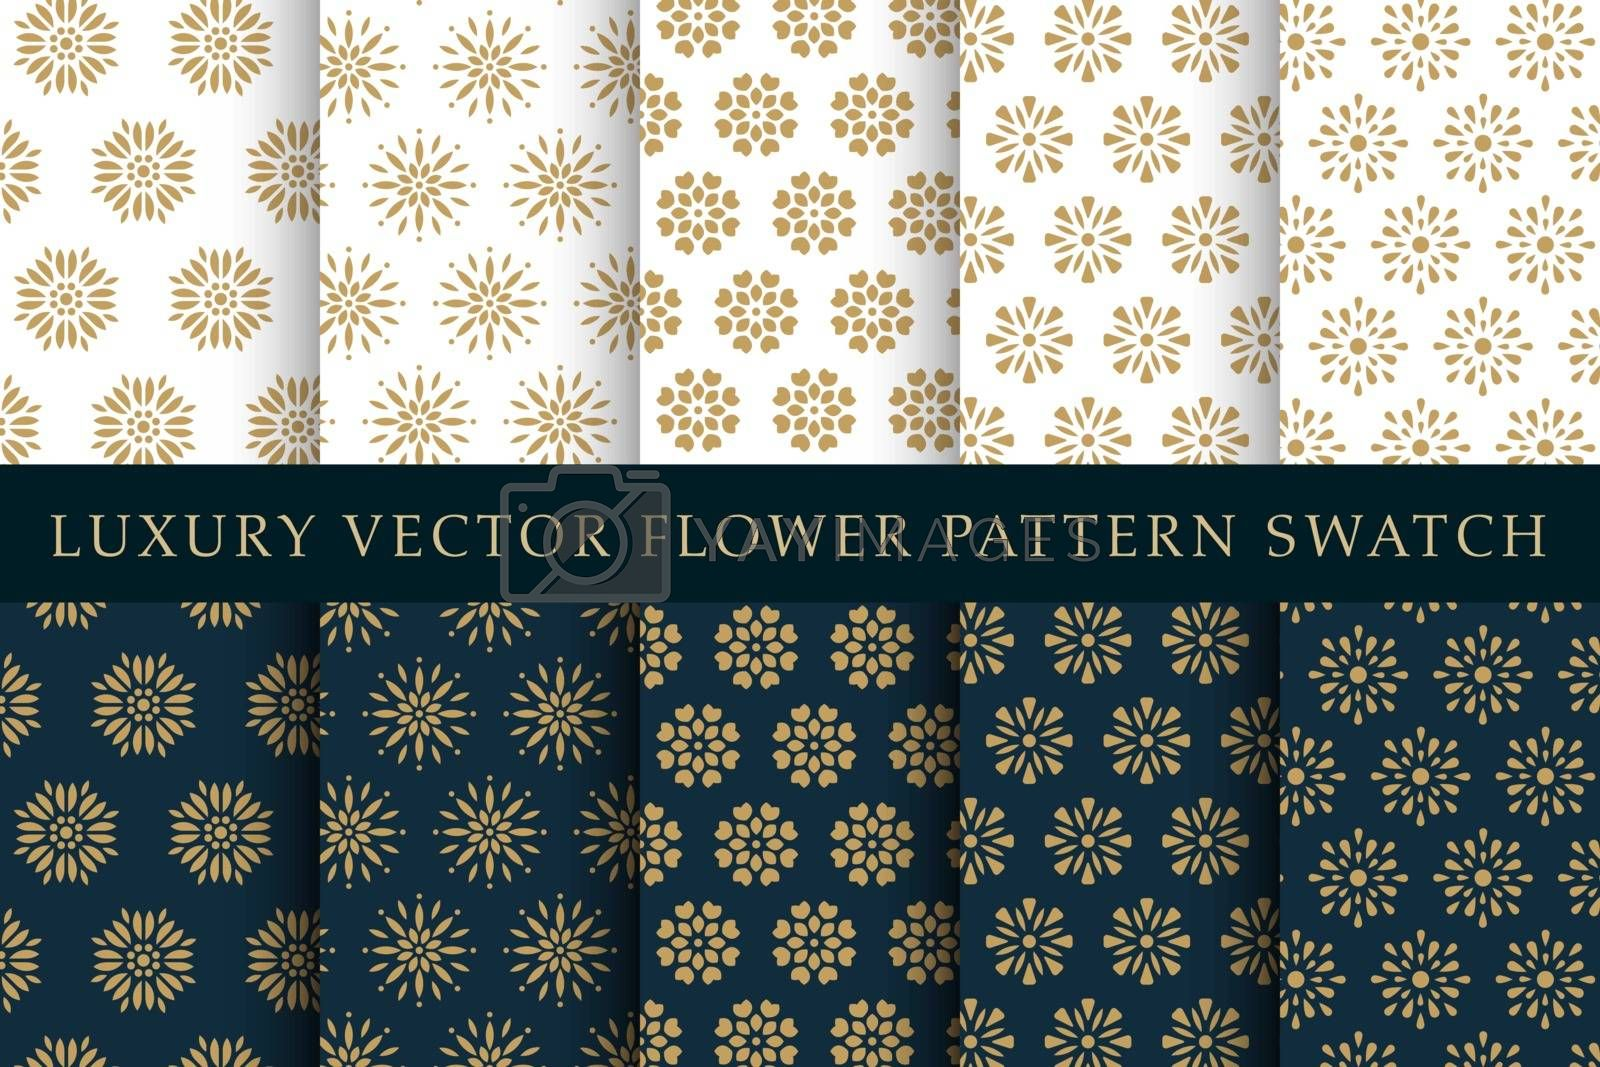 Golden luxury abstract flower concept vector swatches pattern pack